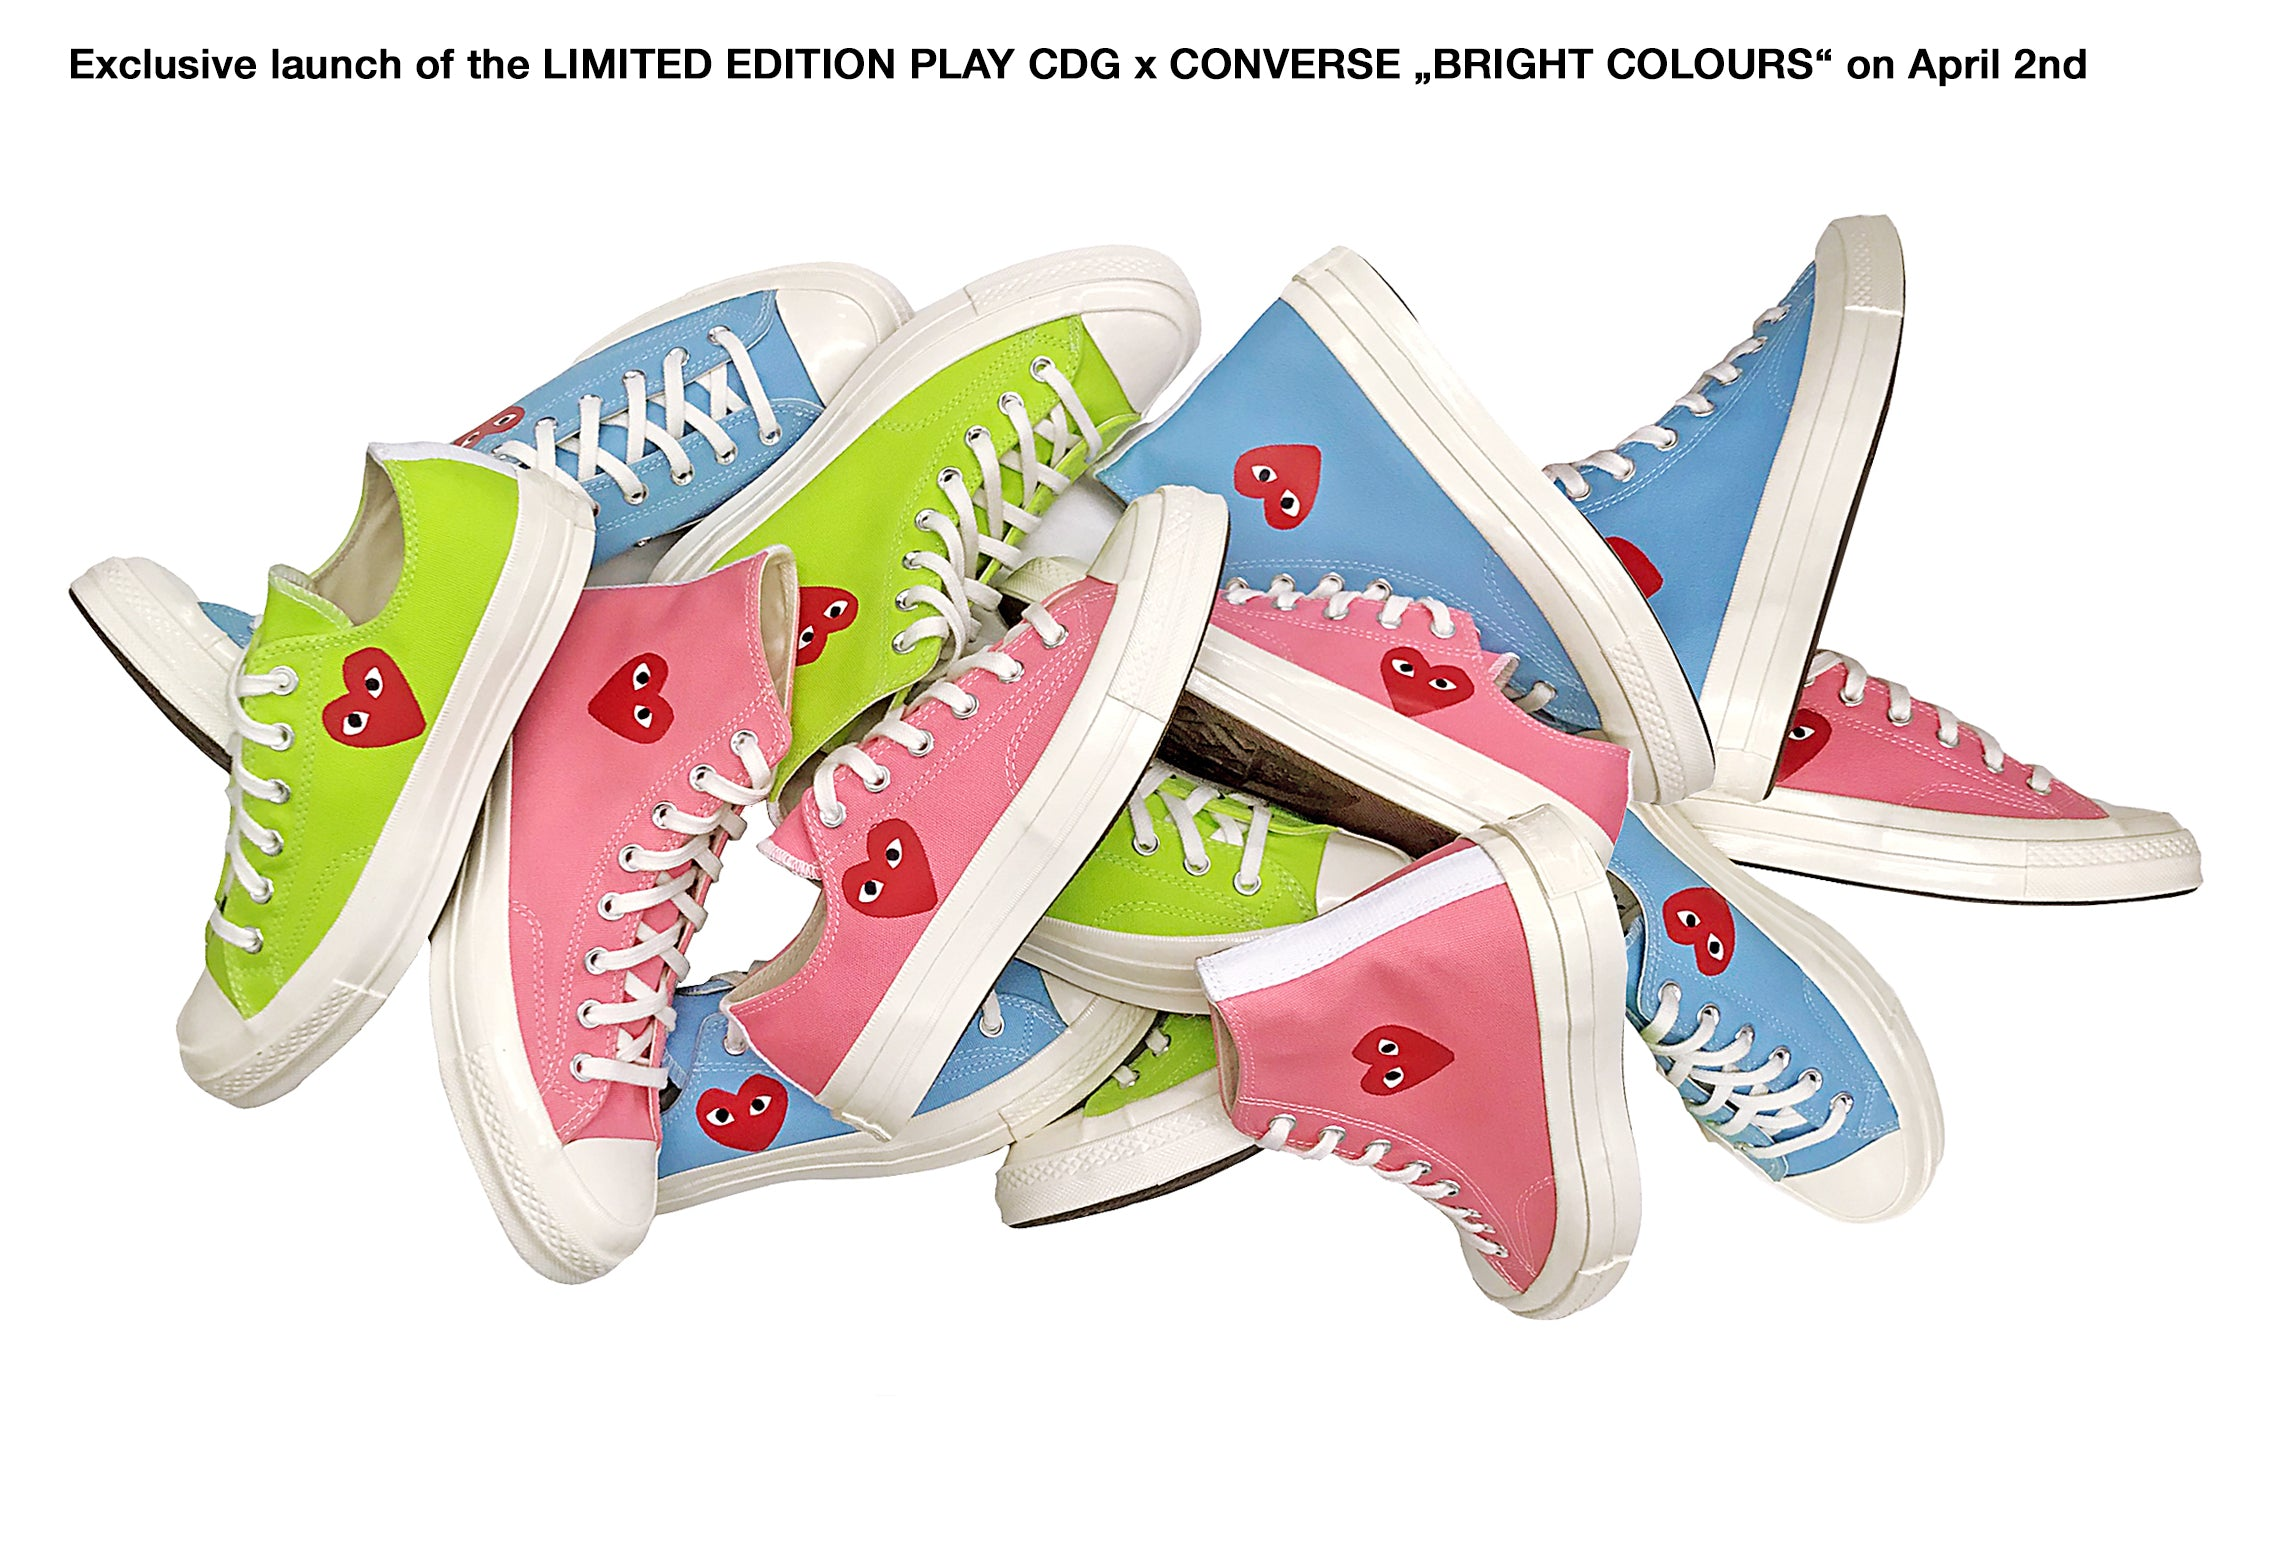 comme des garcons germany online shop banner CDG Deutschland Play x Converse Bright